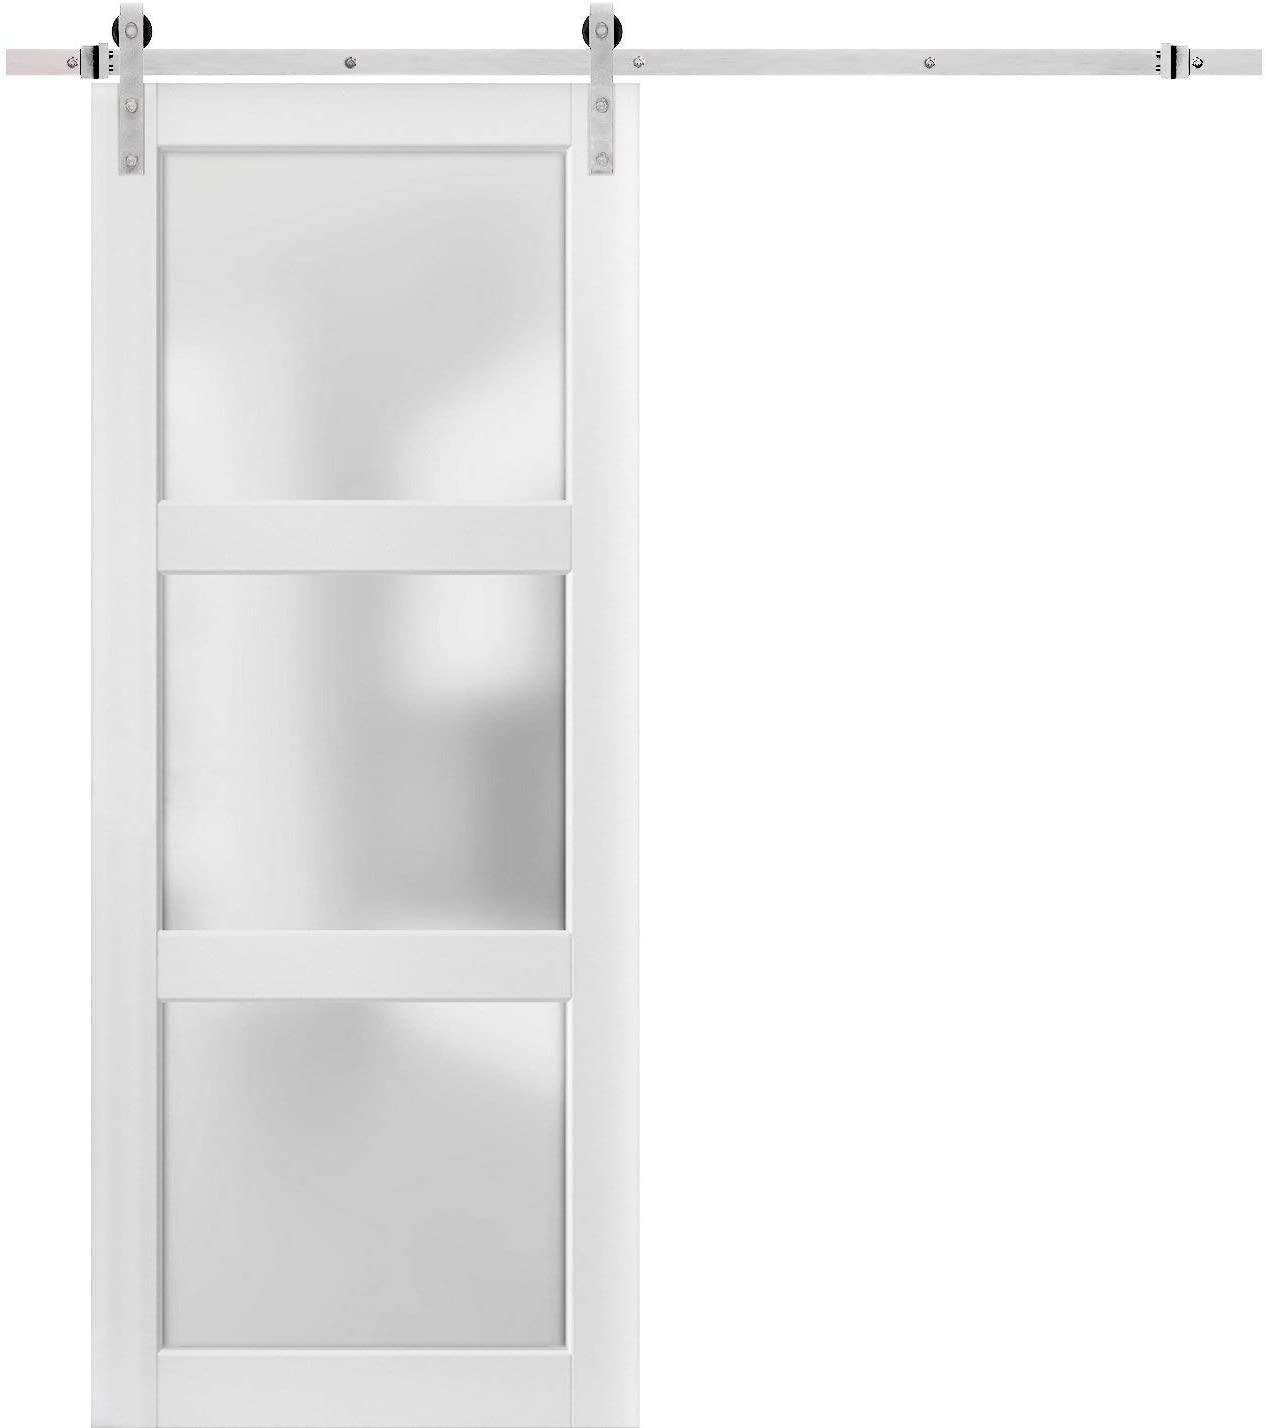 Sturdy Barn Door 36 x 84 inches Frosted Glass 3 Lites | Lucia 2552 Matte White | Top Mount Stainless Steel 6.6FT Rail Hangers Heavy Set | Solid Panel Interior Doors